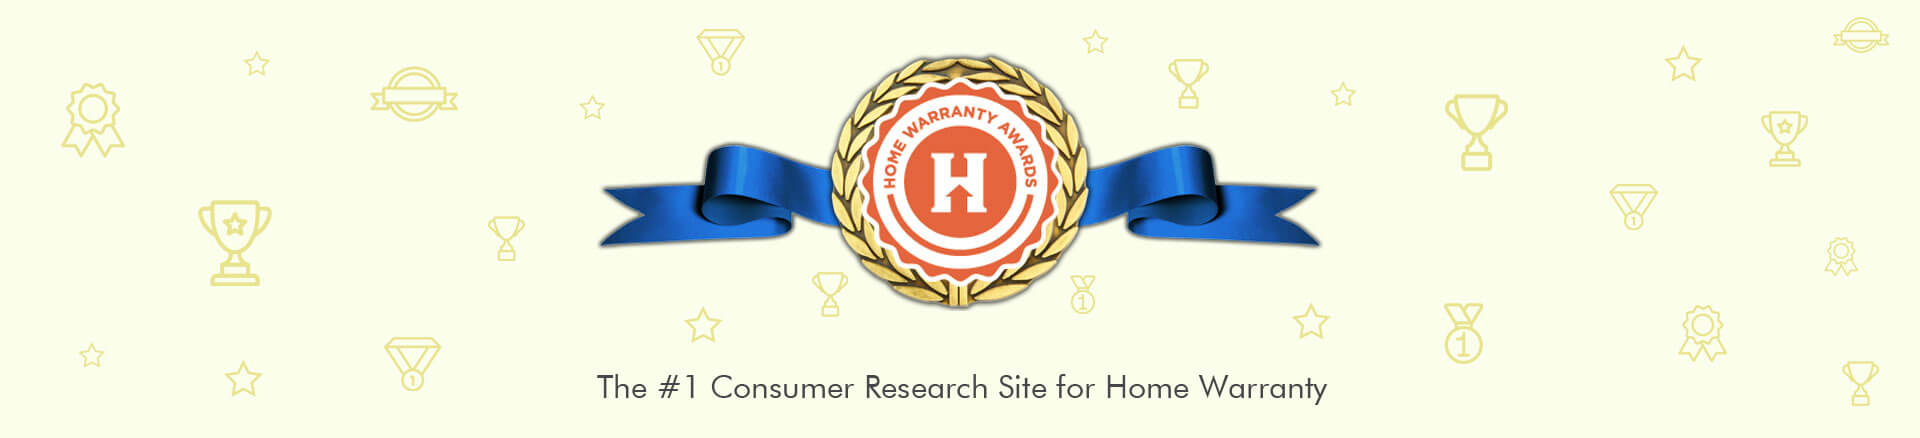 Best home warranty companies in az - Homewarrantyreviews Awards Home Home Warranty Awards 2017